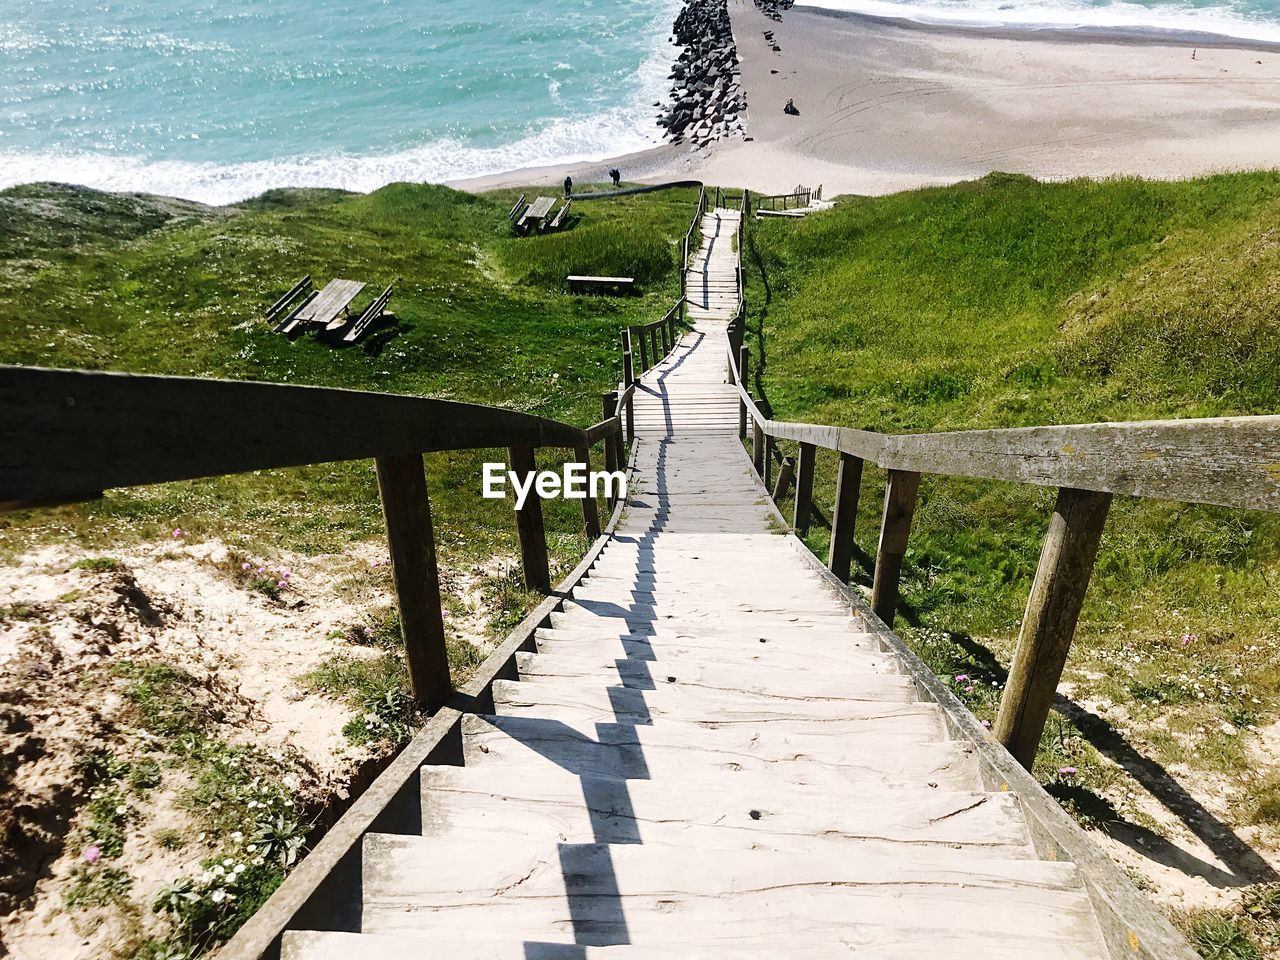 water, sunlight, nature, day, plant, shadow, land, no people, high angle view, wood - material, architecture, beach, green color, beauty in nature, railing, outdoors, footpath, grass, tranquility